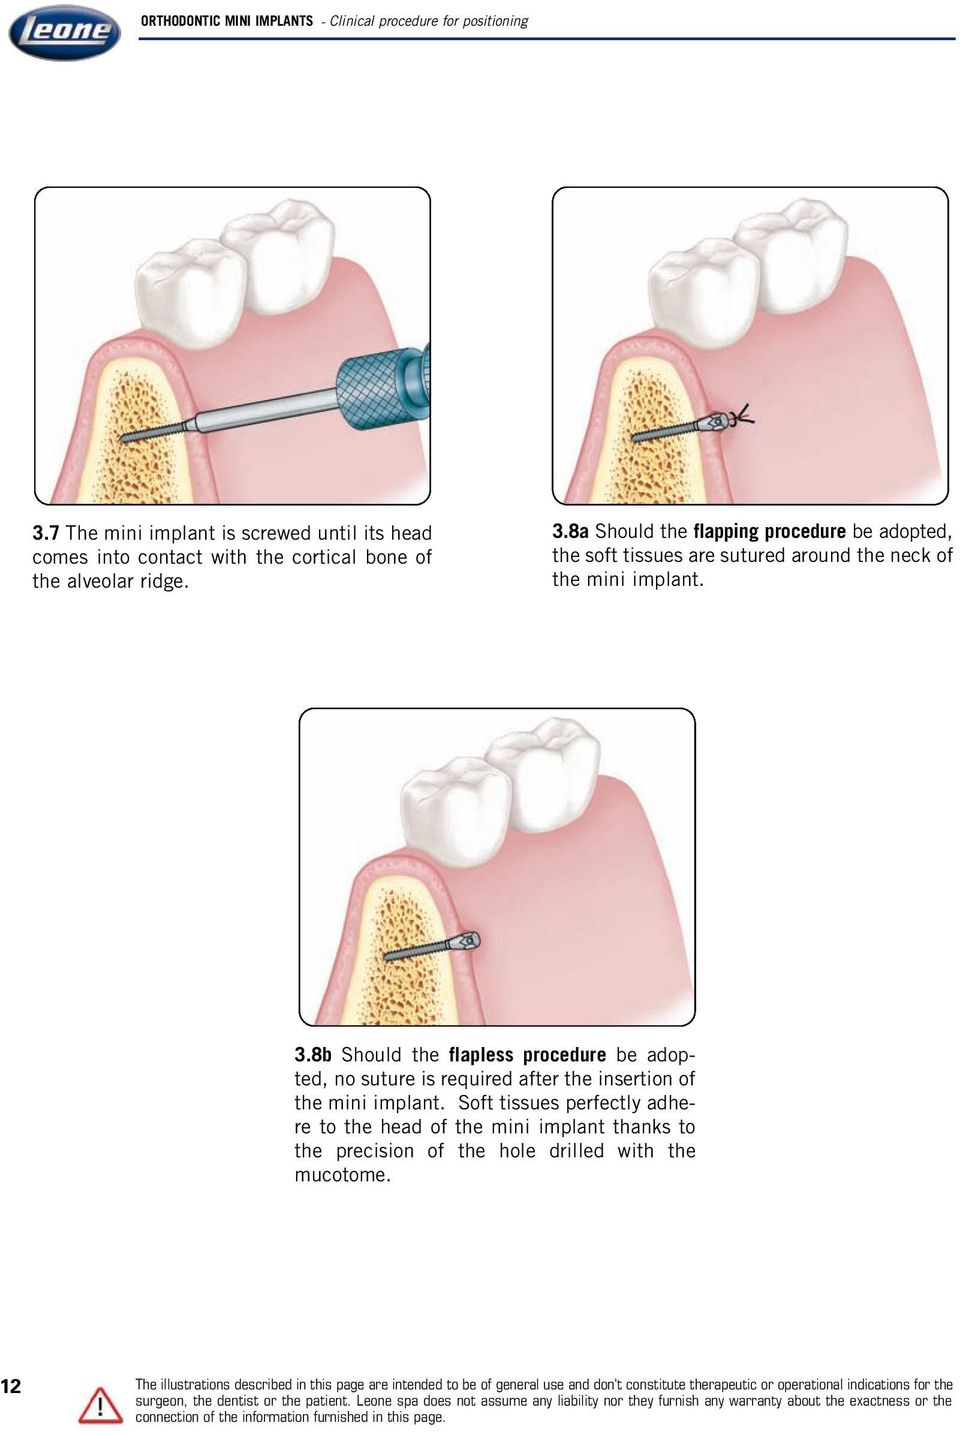 8b Should the flapless procedure be adopted, no suture is required after the insertion of the mini implant.